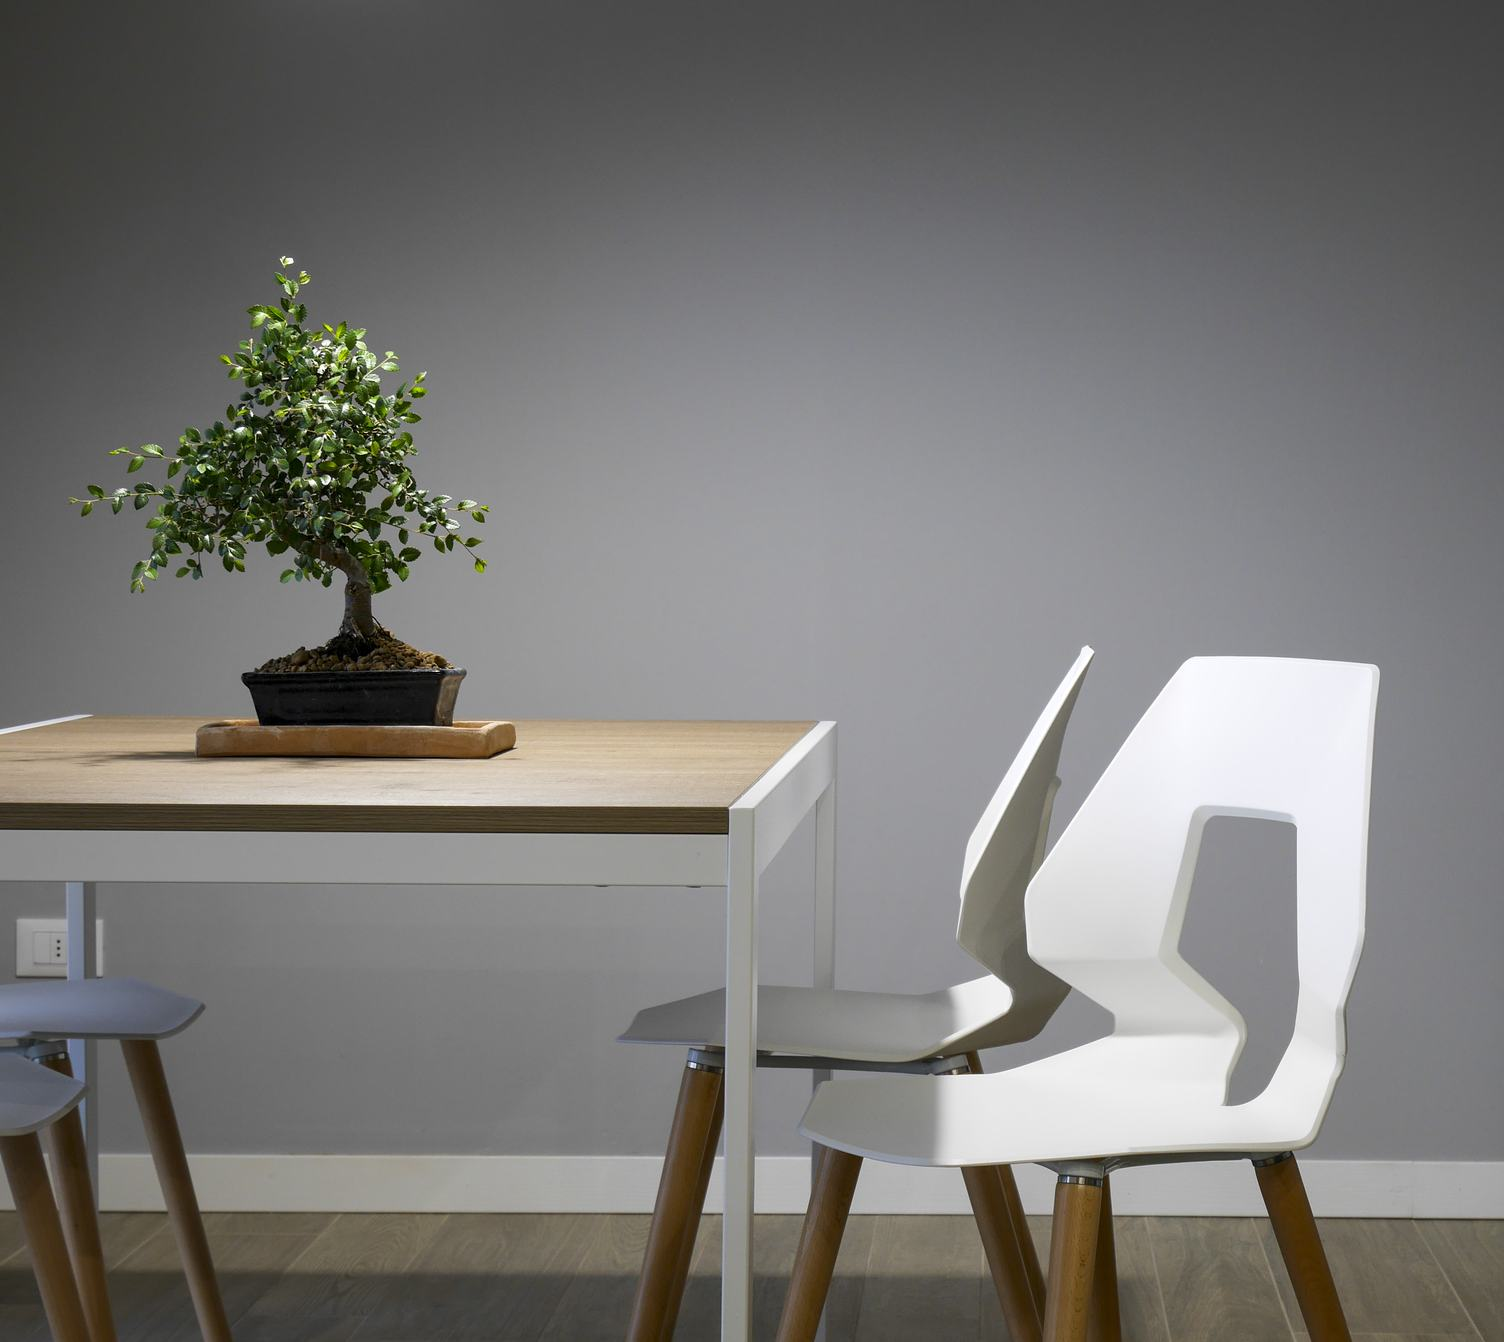 Table with Chairs and Small Bonsai Tree Minimal Interior Design